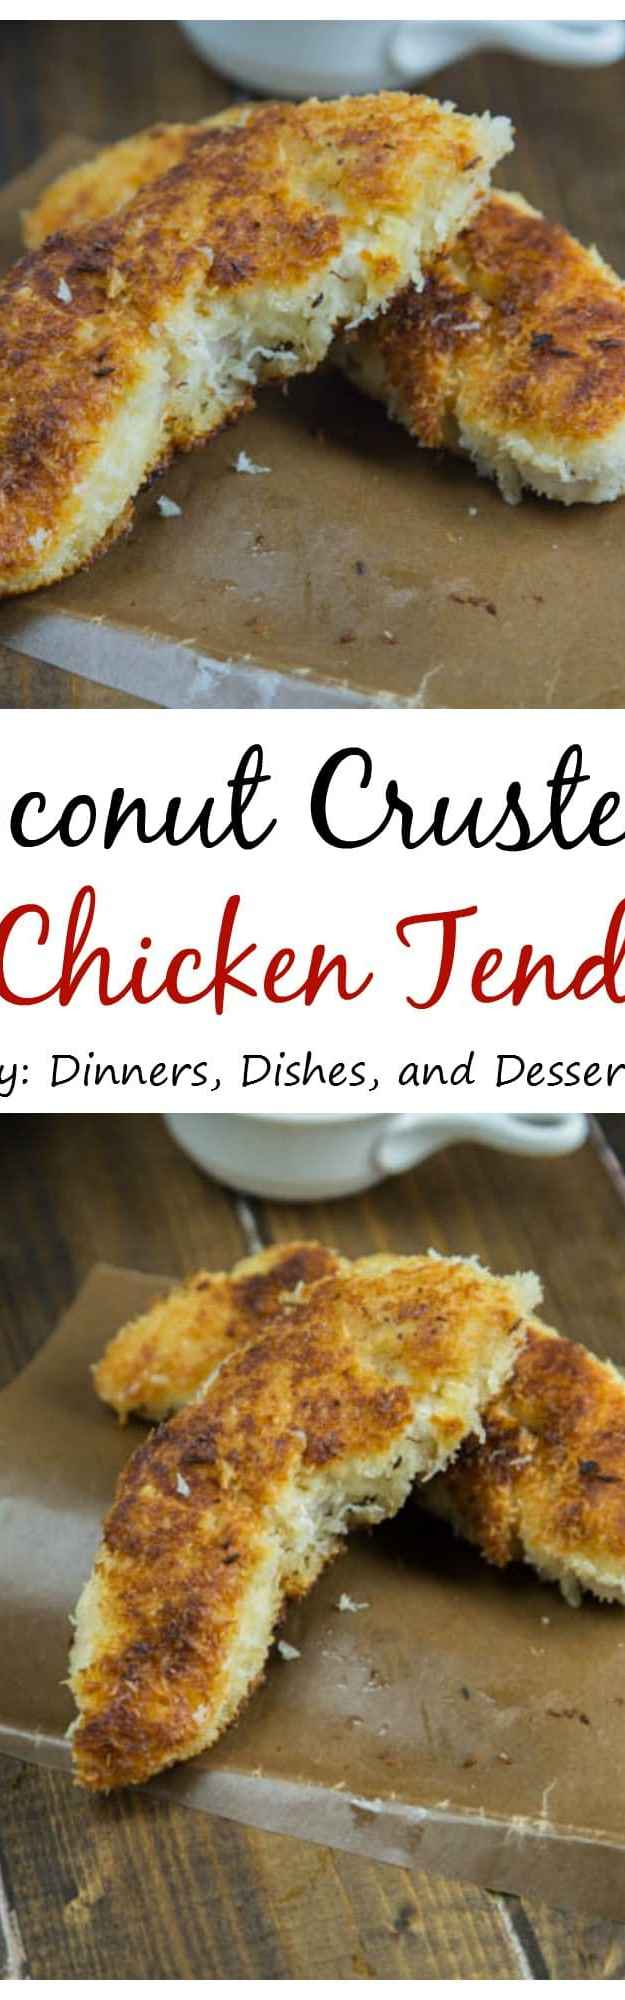 Coconut Crusted Chicken Tenders - super crispy chicken tenders that are coated in shredded coconut! Perfect for a quick dinner for the whole family!